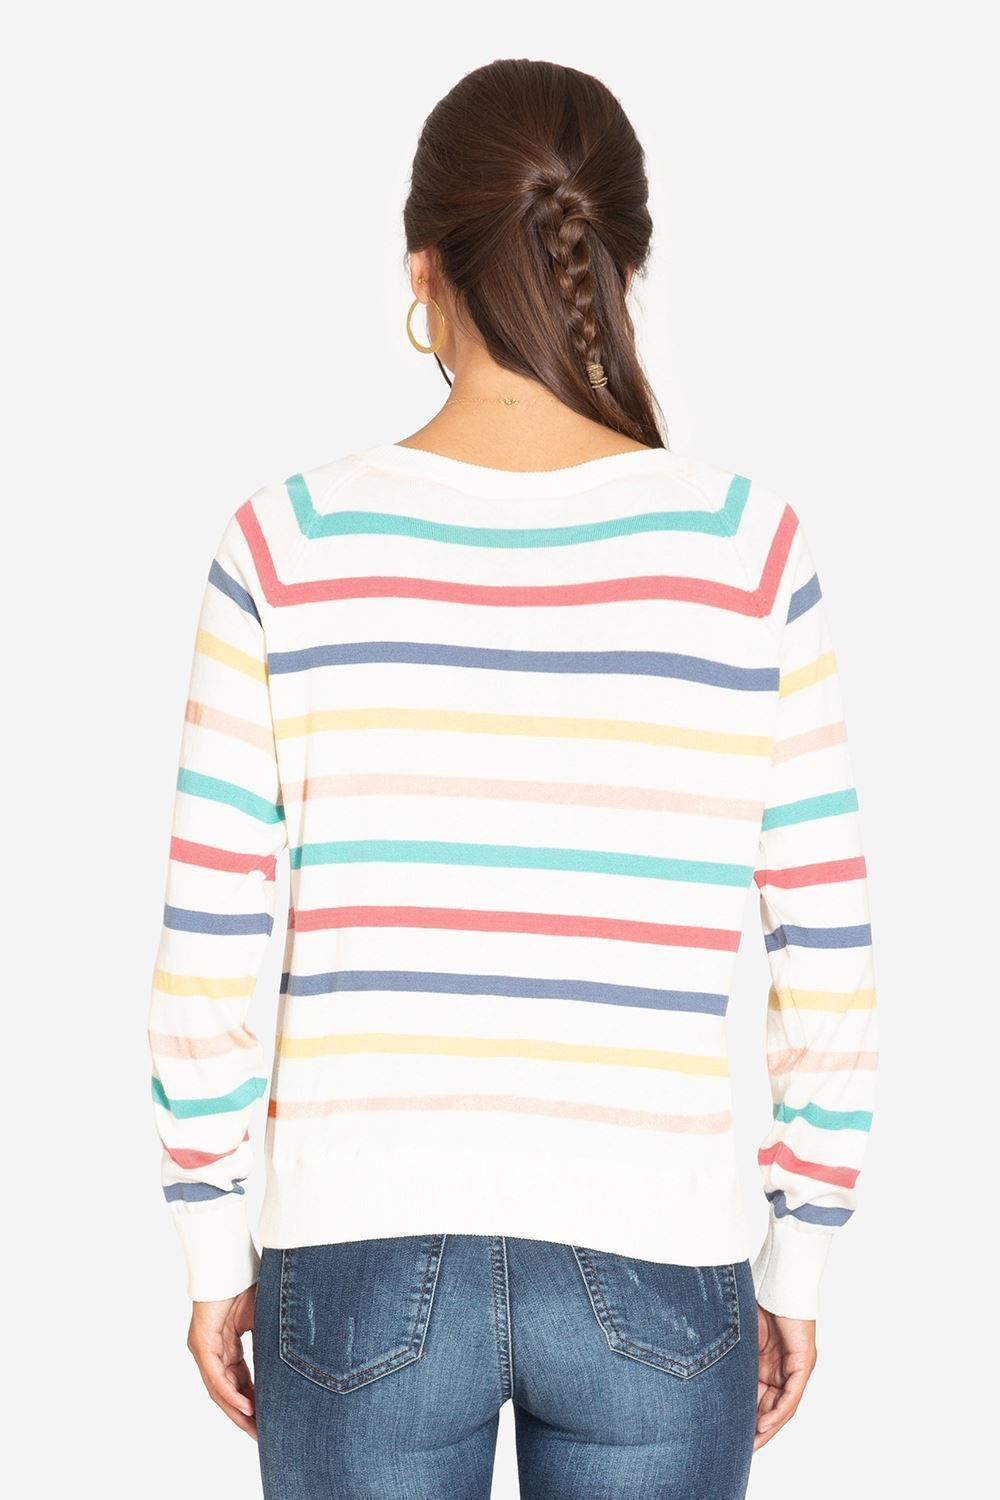 Striped nursing top in loose fit - seen from behind